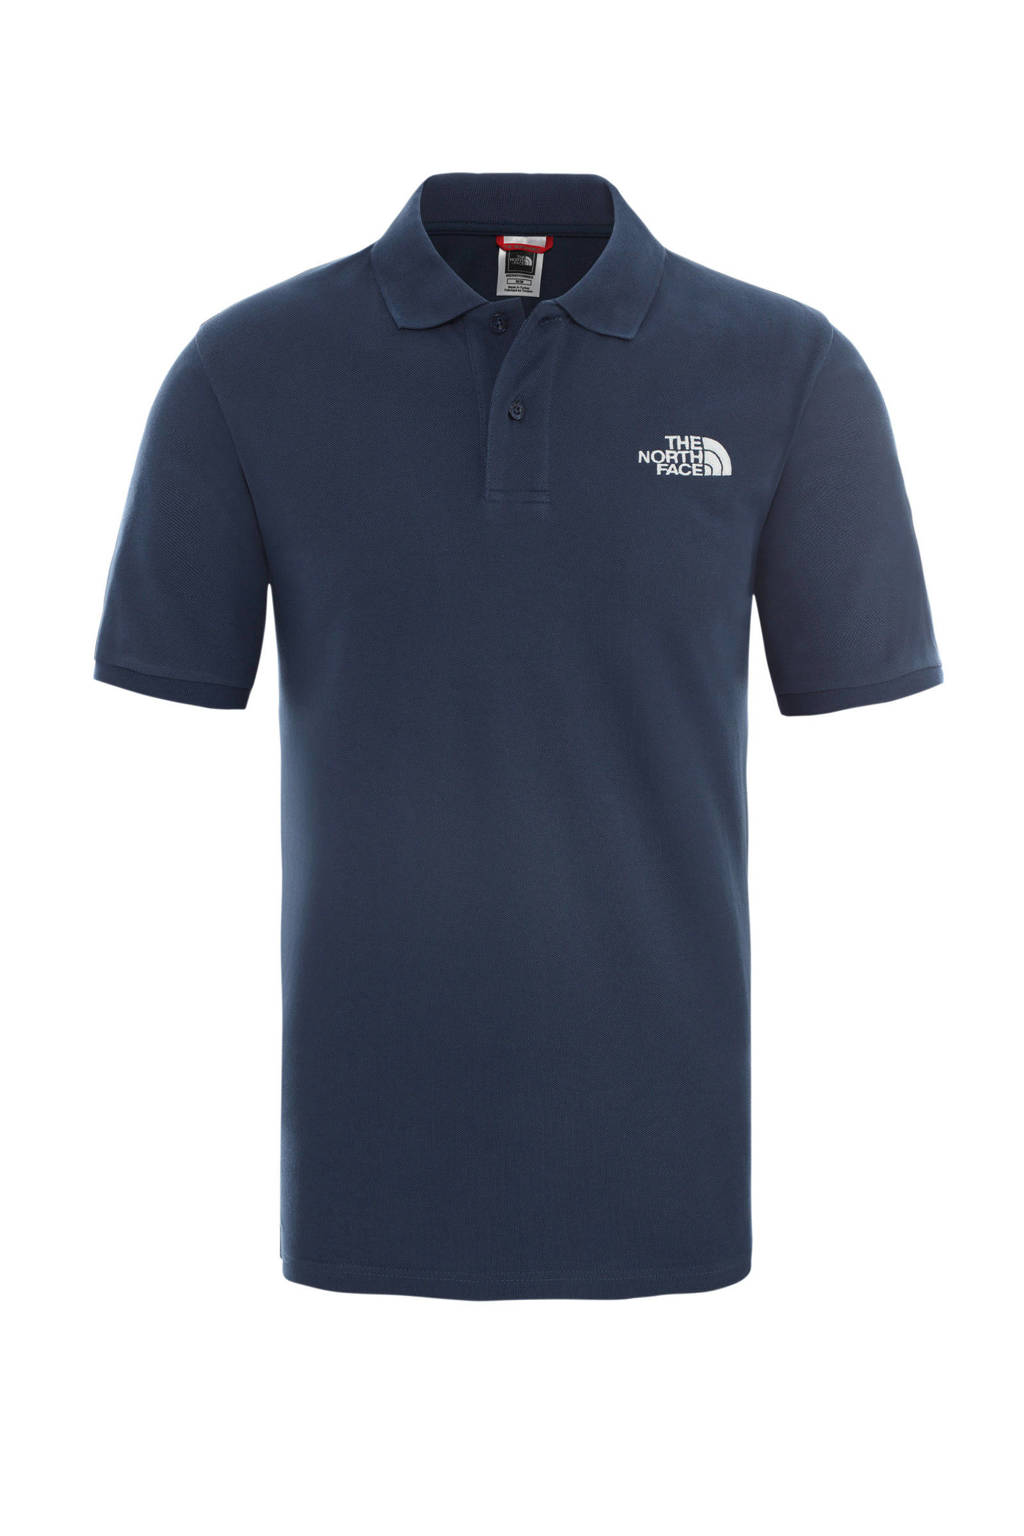 The North Face   polo blauw, Blauw